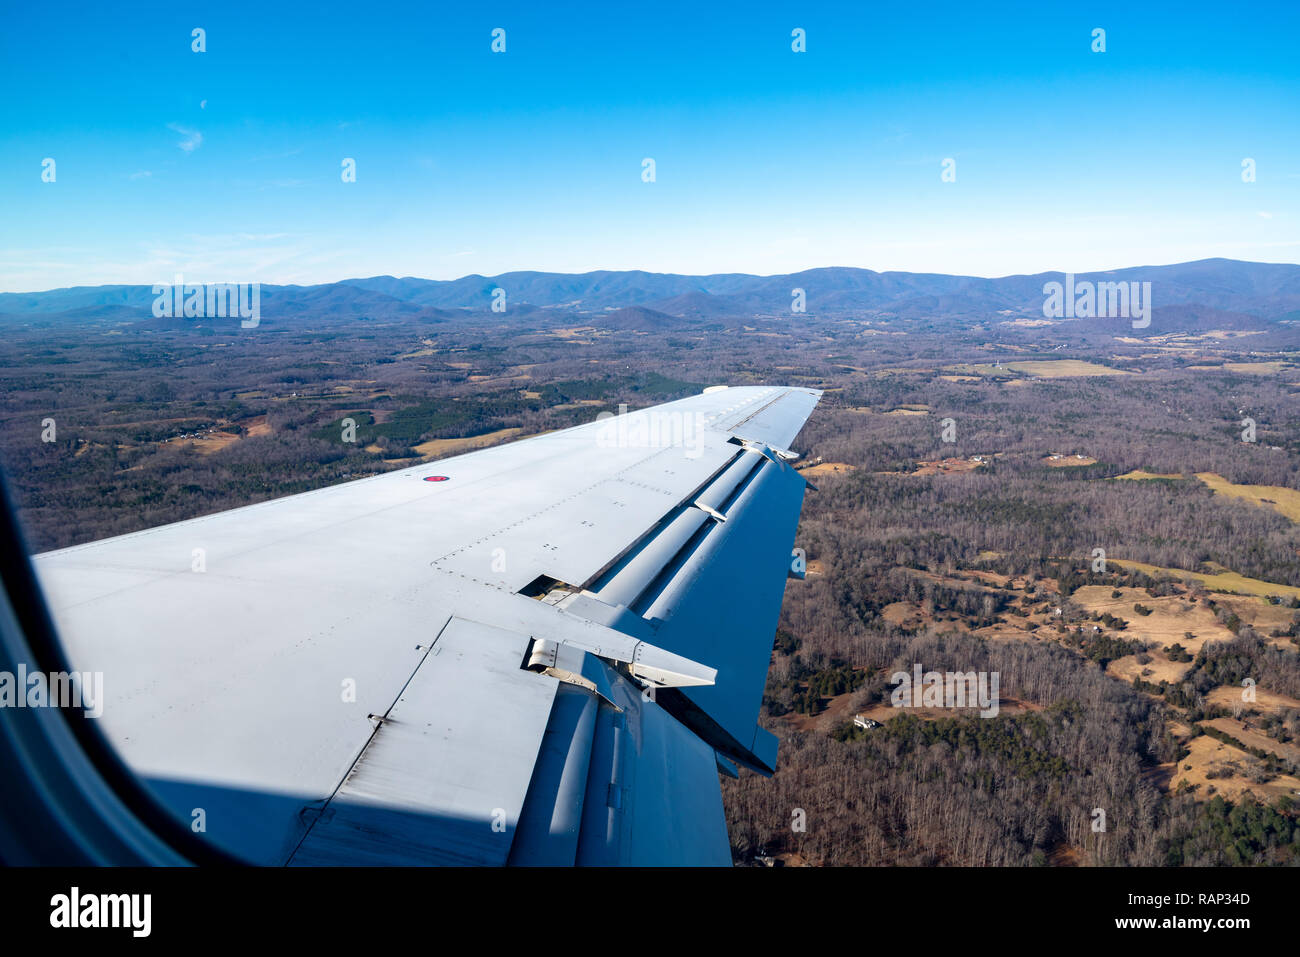 New York, USA,  29DEC2018 - The wing of an Embraer ERJ-135 twin-jet is seen against the landscape as it descends towards Charlottesville, Virginia.  P - Stock Image